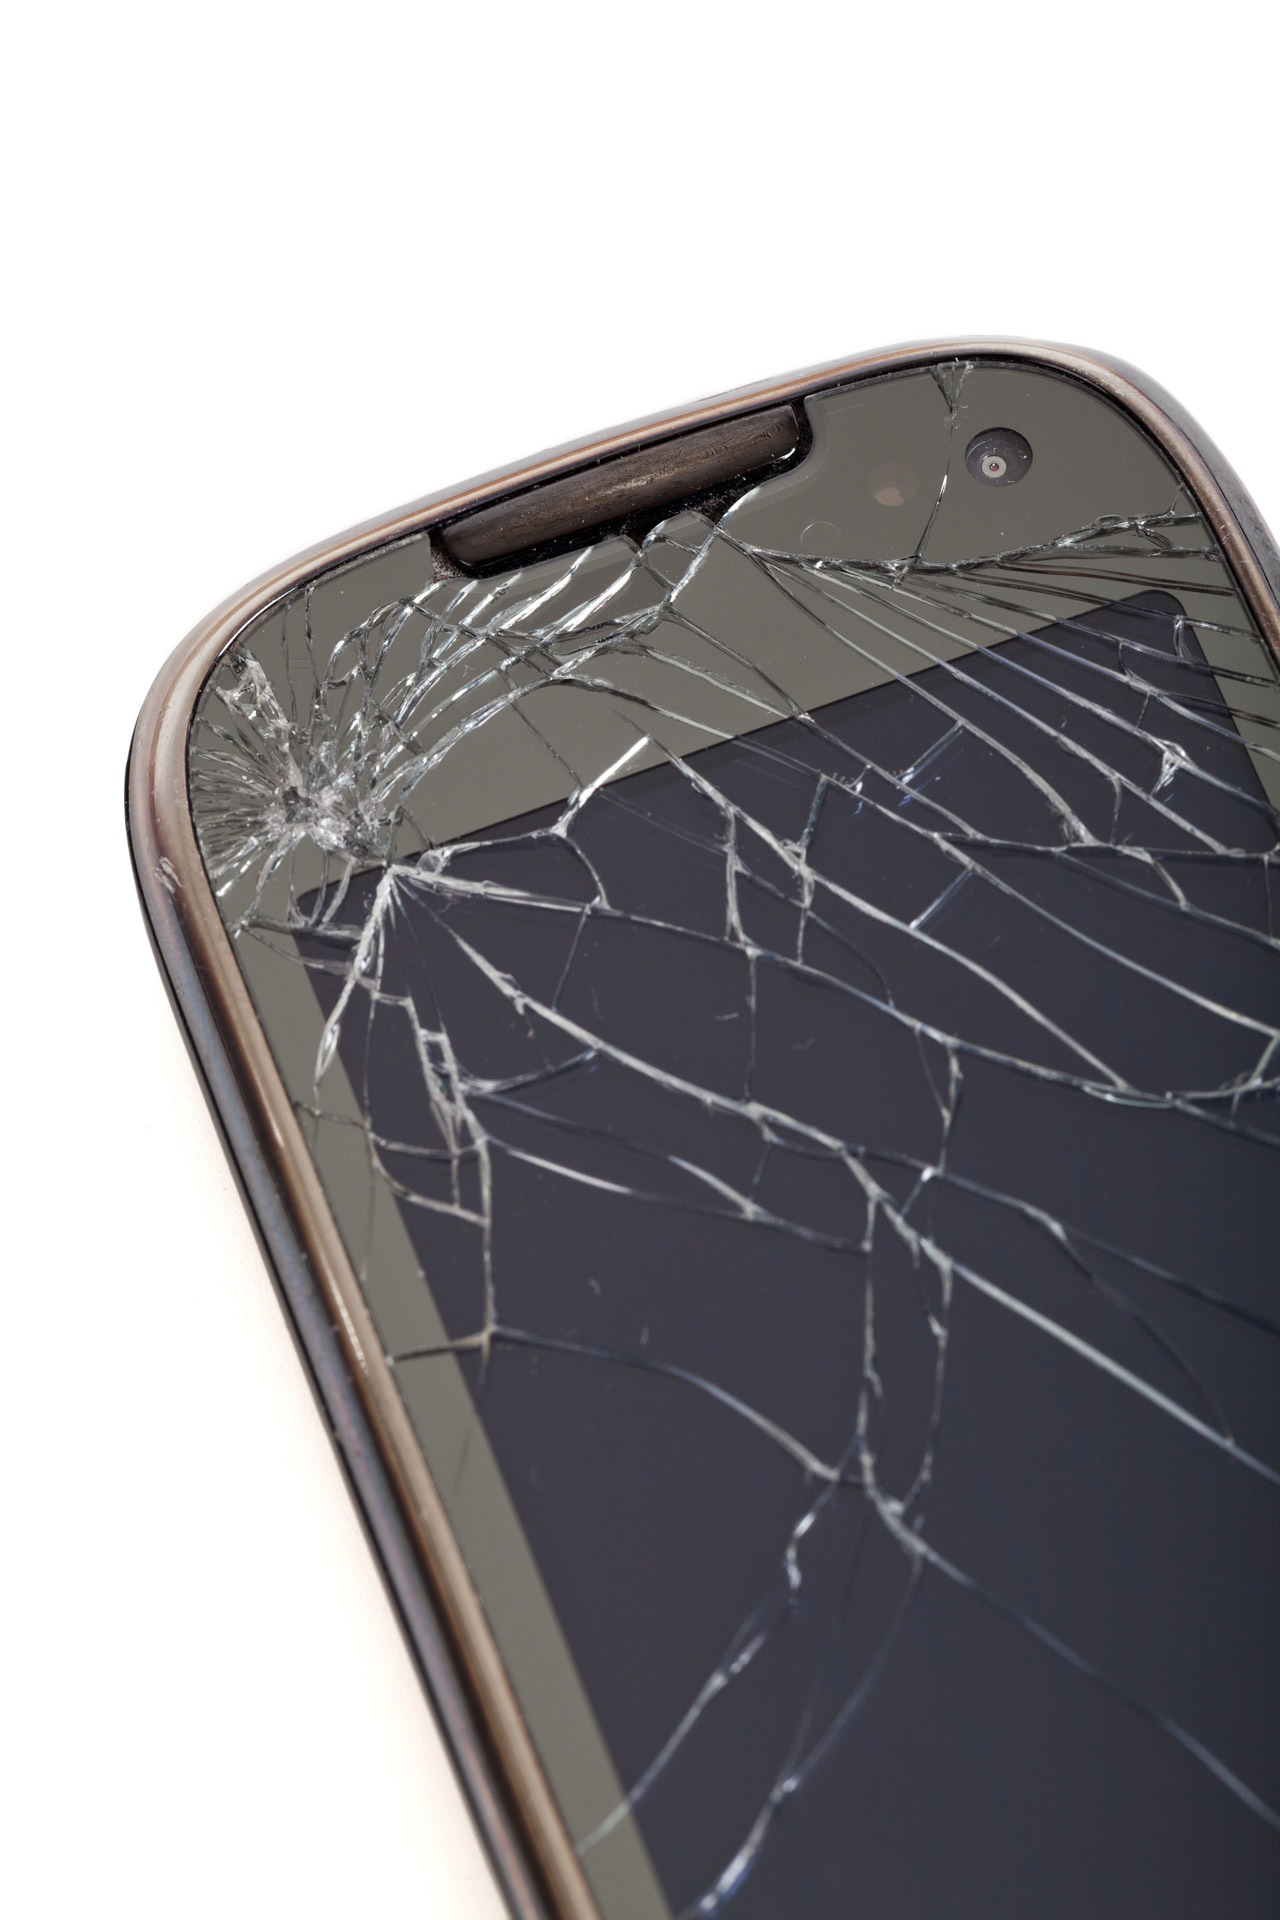 What might be a ZTE phone broken